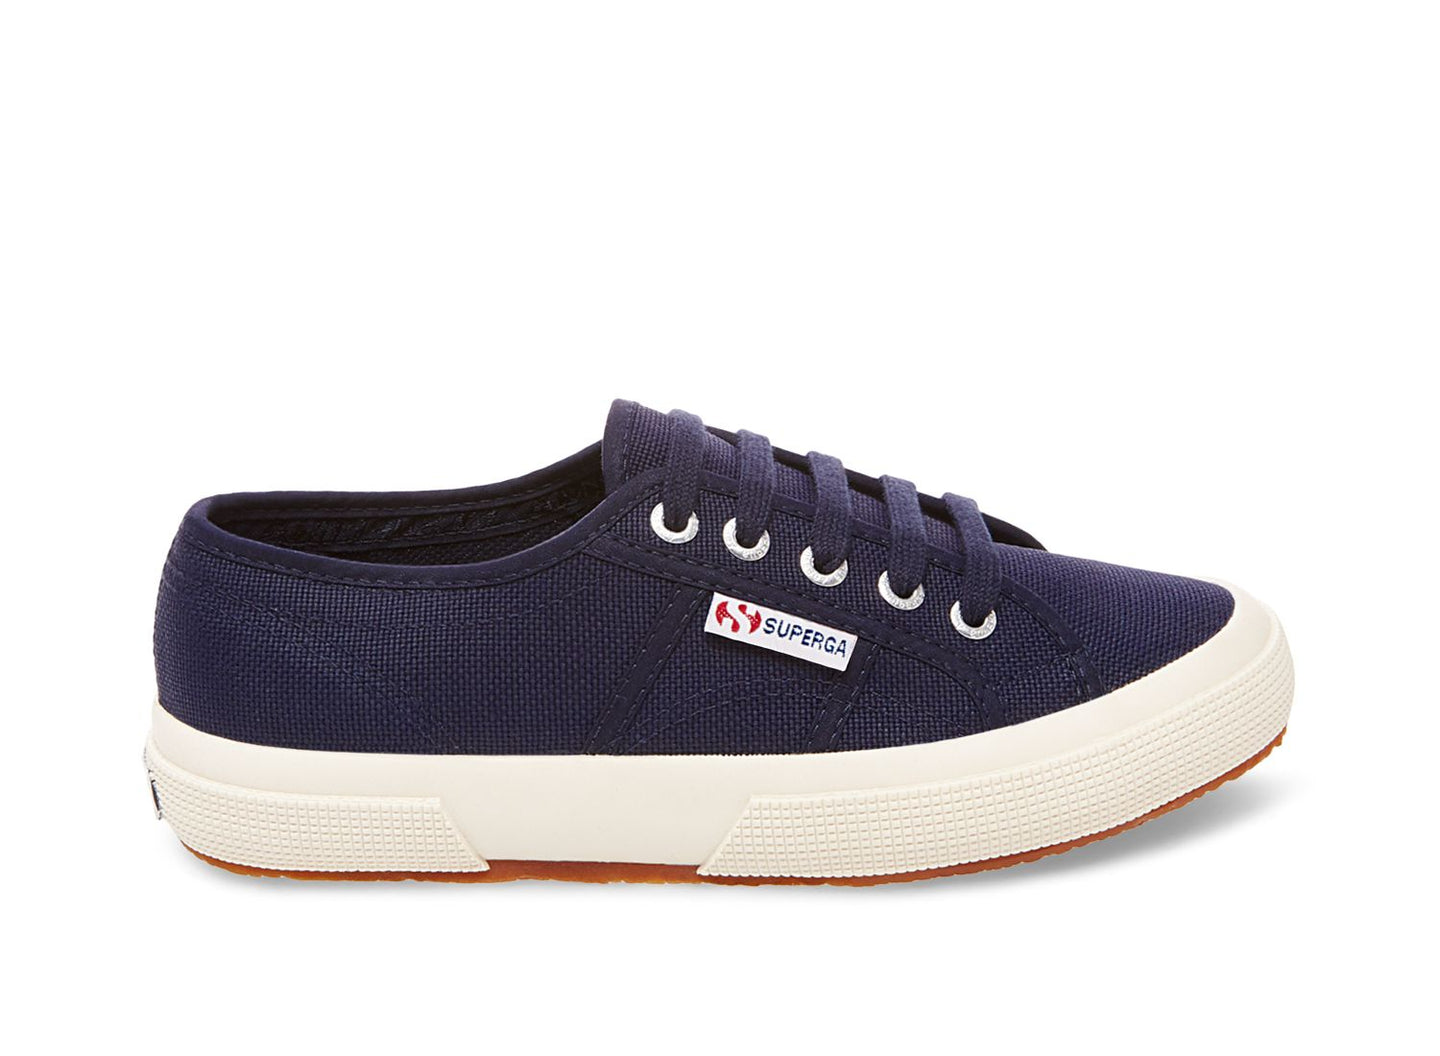 2750 COTU CLASSIC NAVY - Women's and Men's